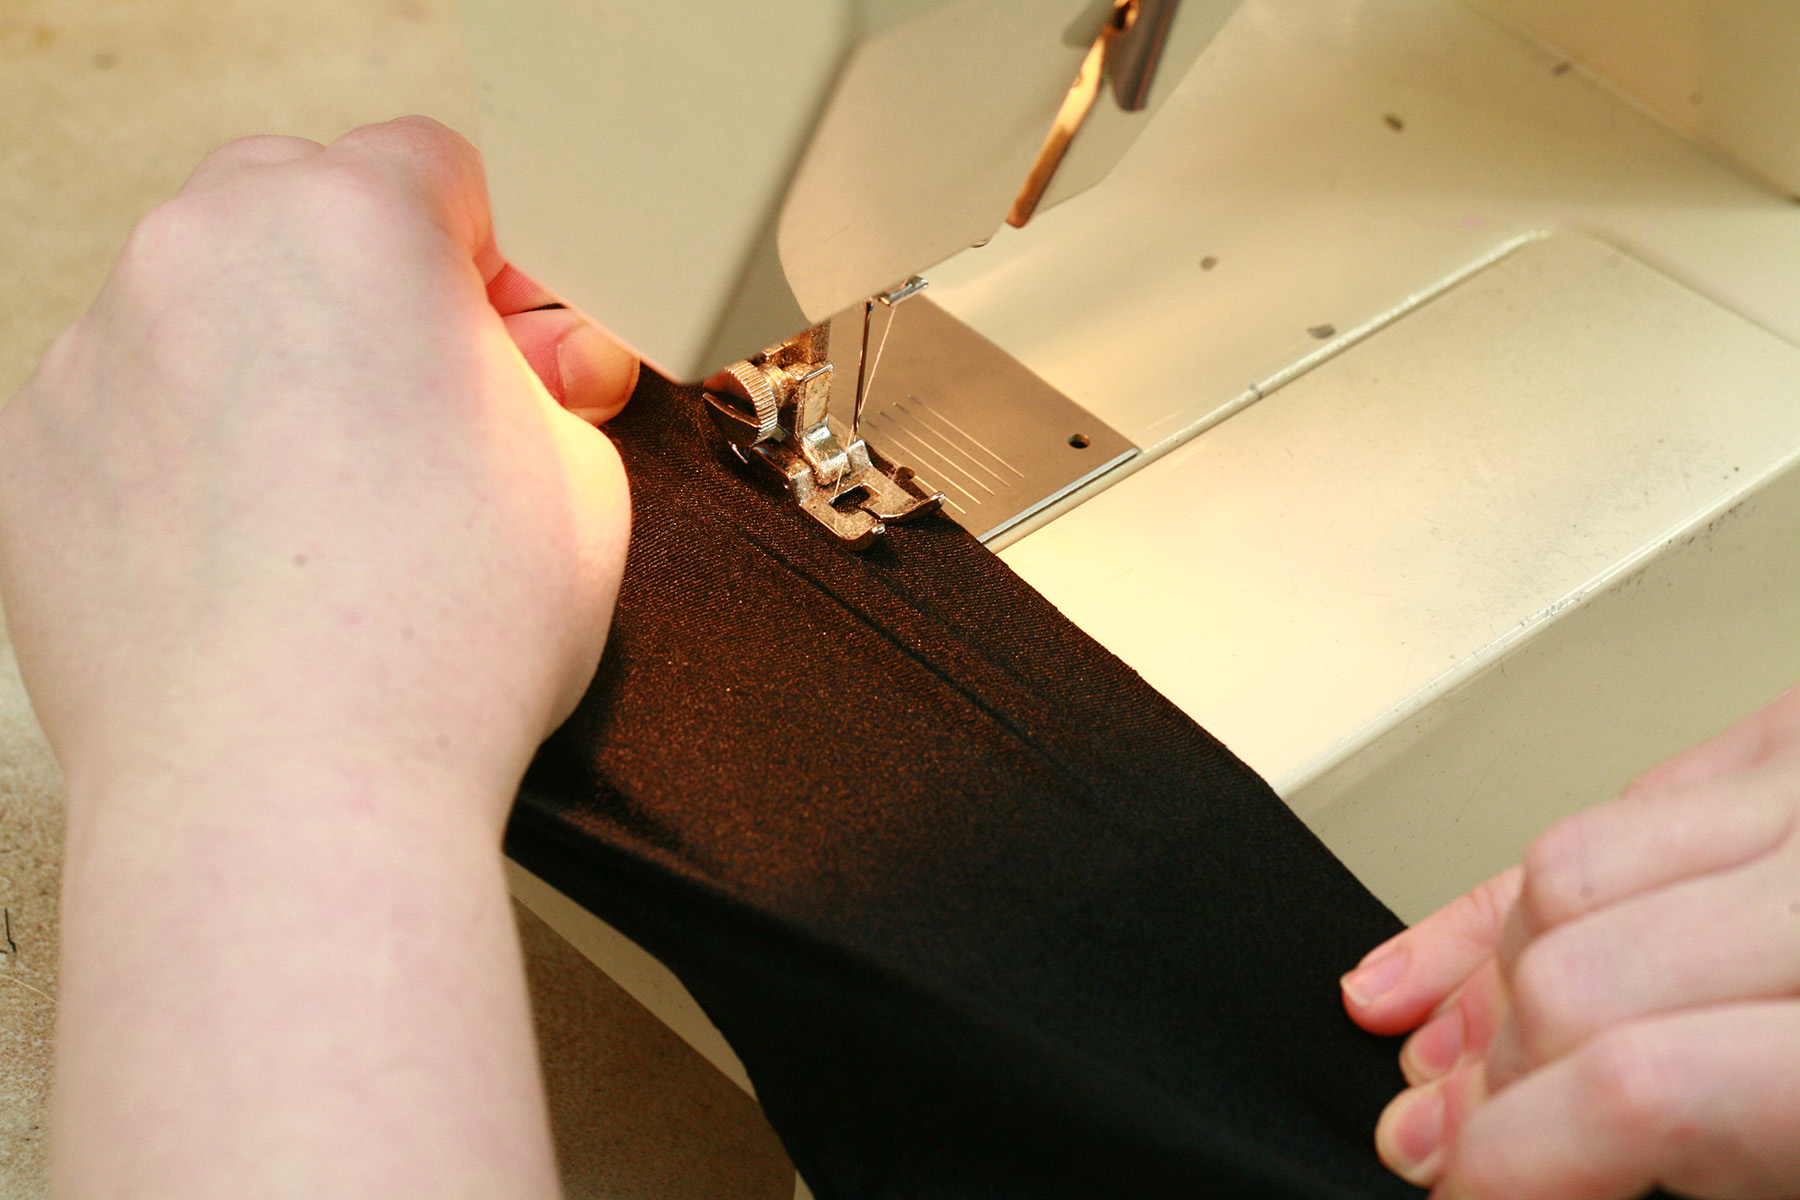 Two hands are sewing spandex with a regular sewing machine.